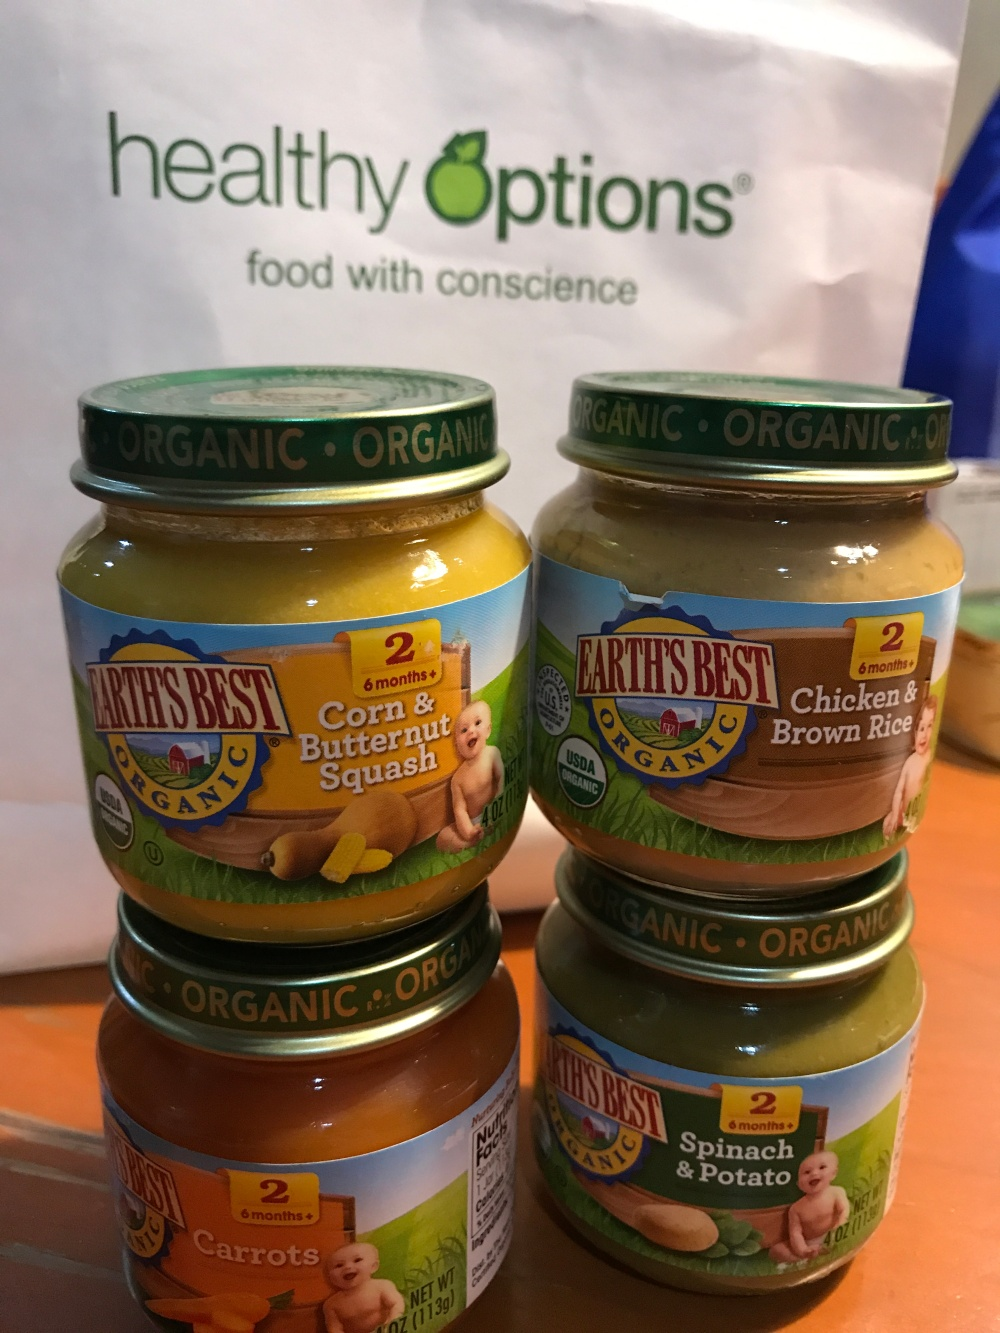 healthy options, earth's best baby food, jarred baby food